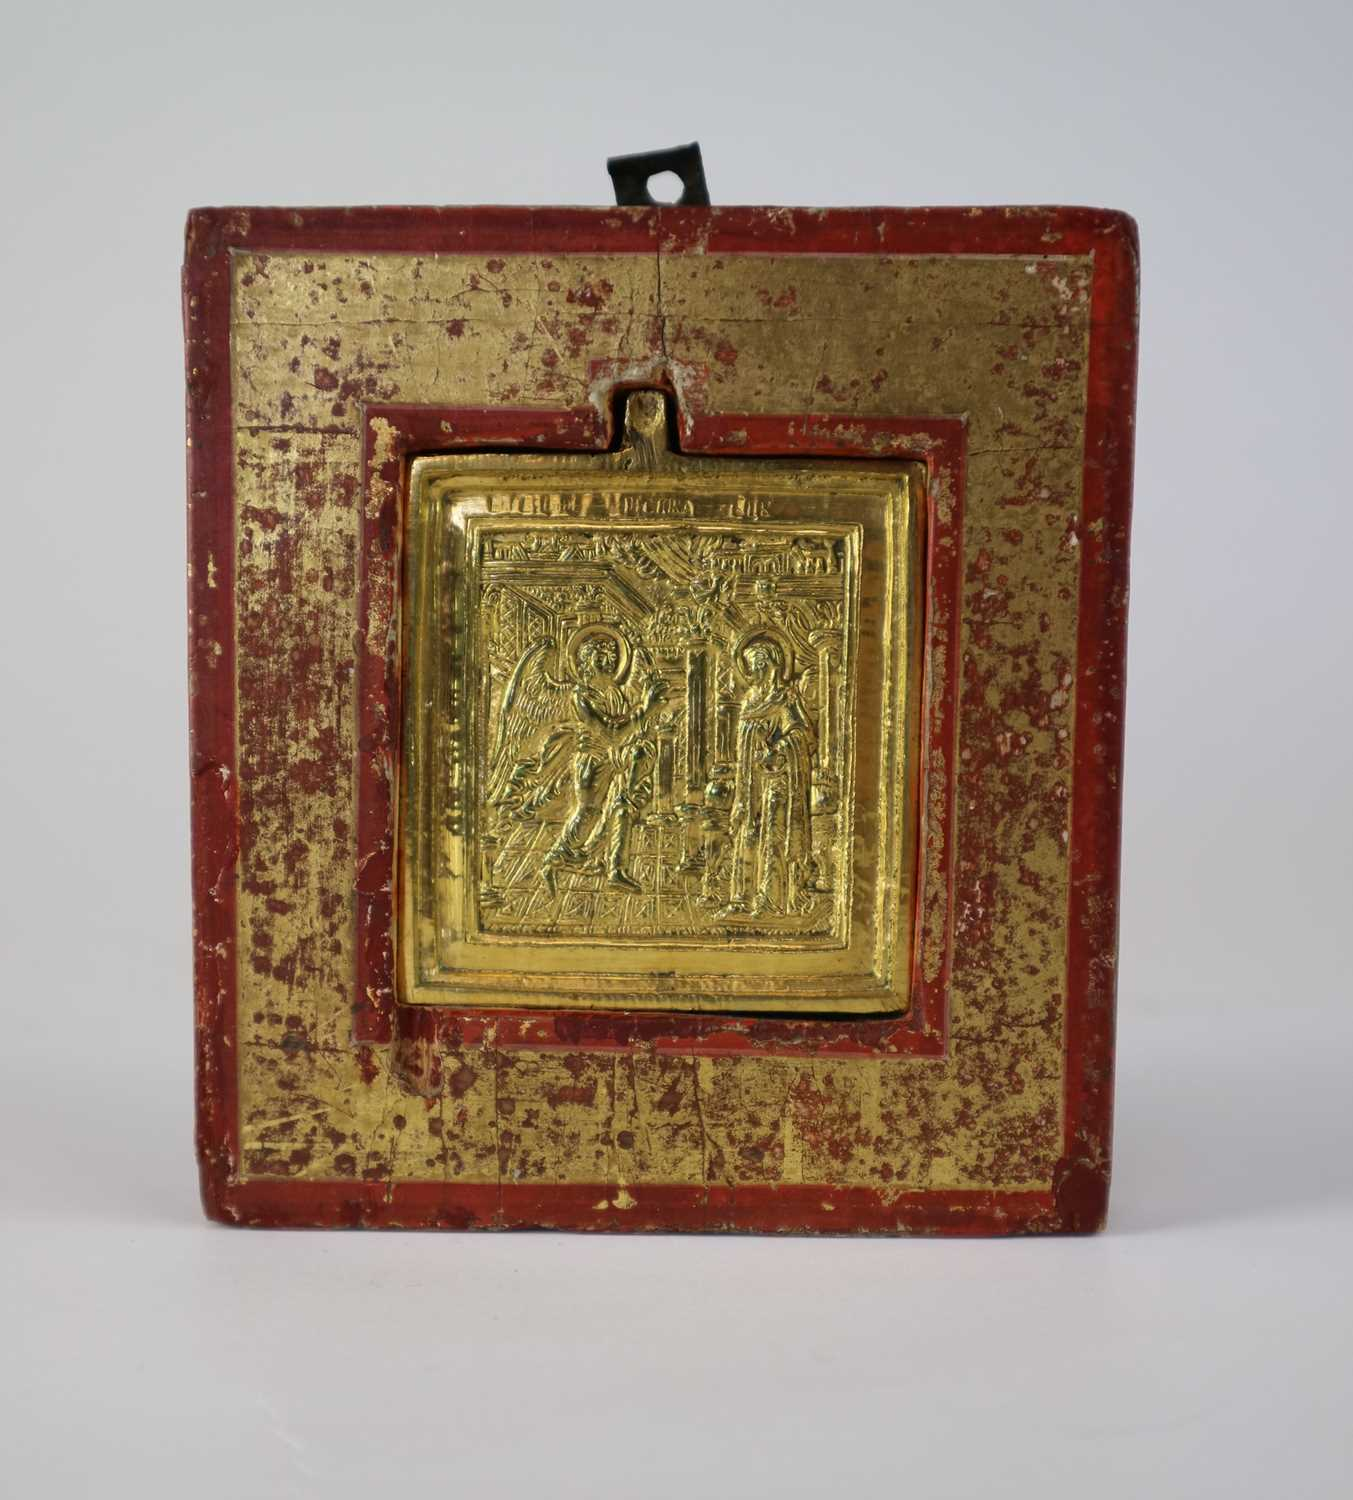 A 19th century Russian, gold coloured metal, 'portable' icon